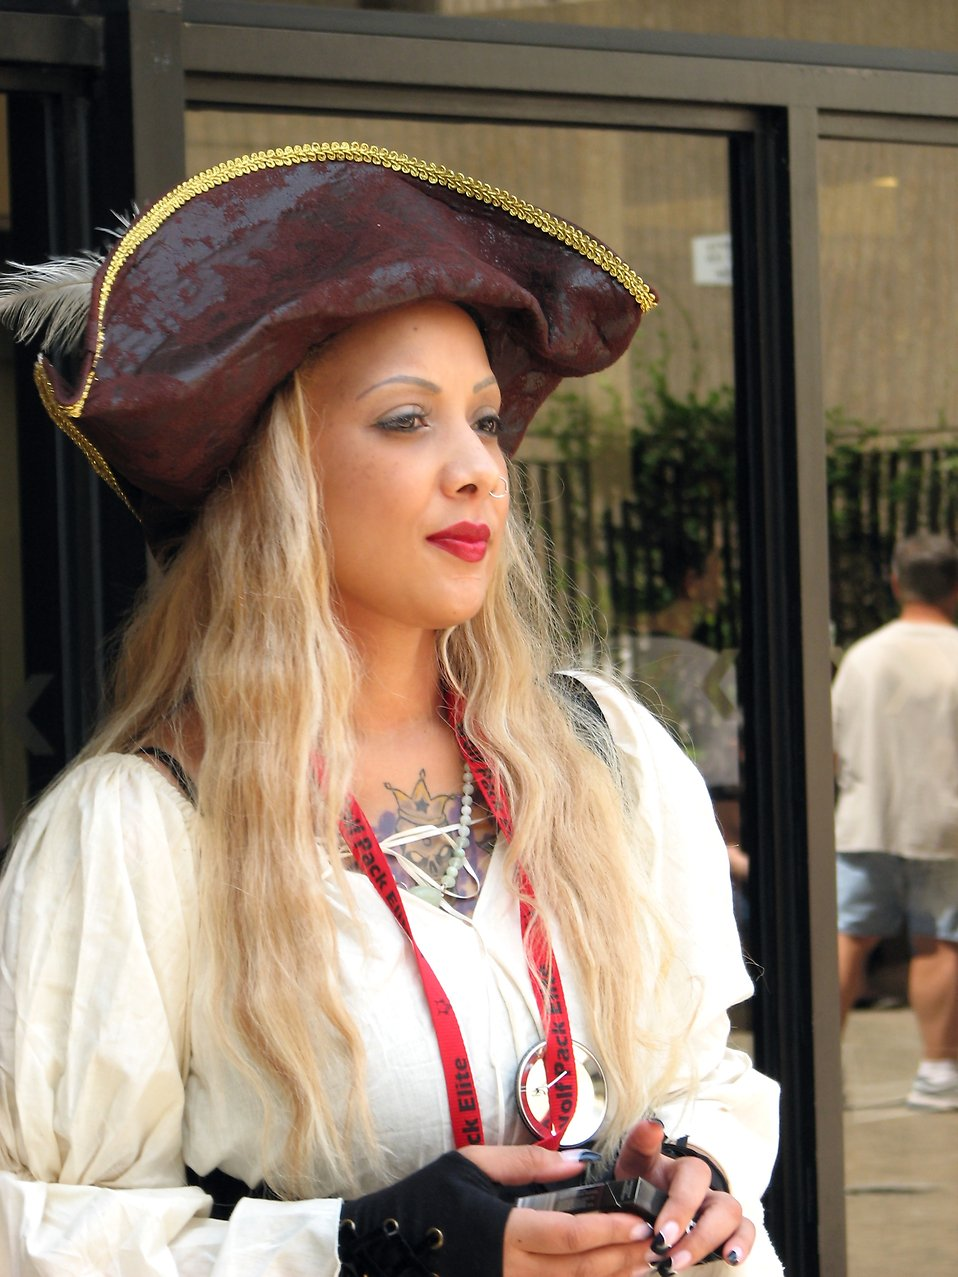 Beautiful woman in a pirate costume at Dragoncon 2008 : Free Stock Photo